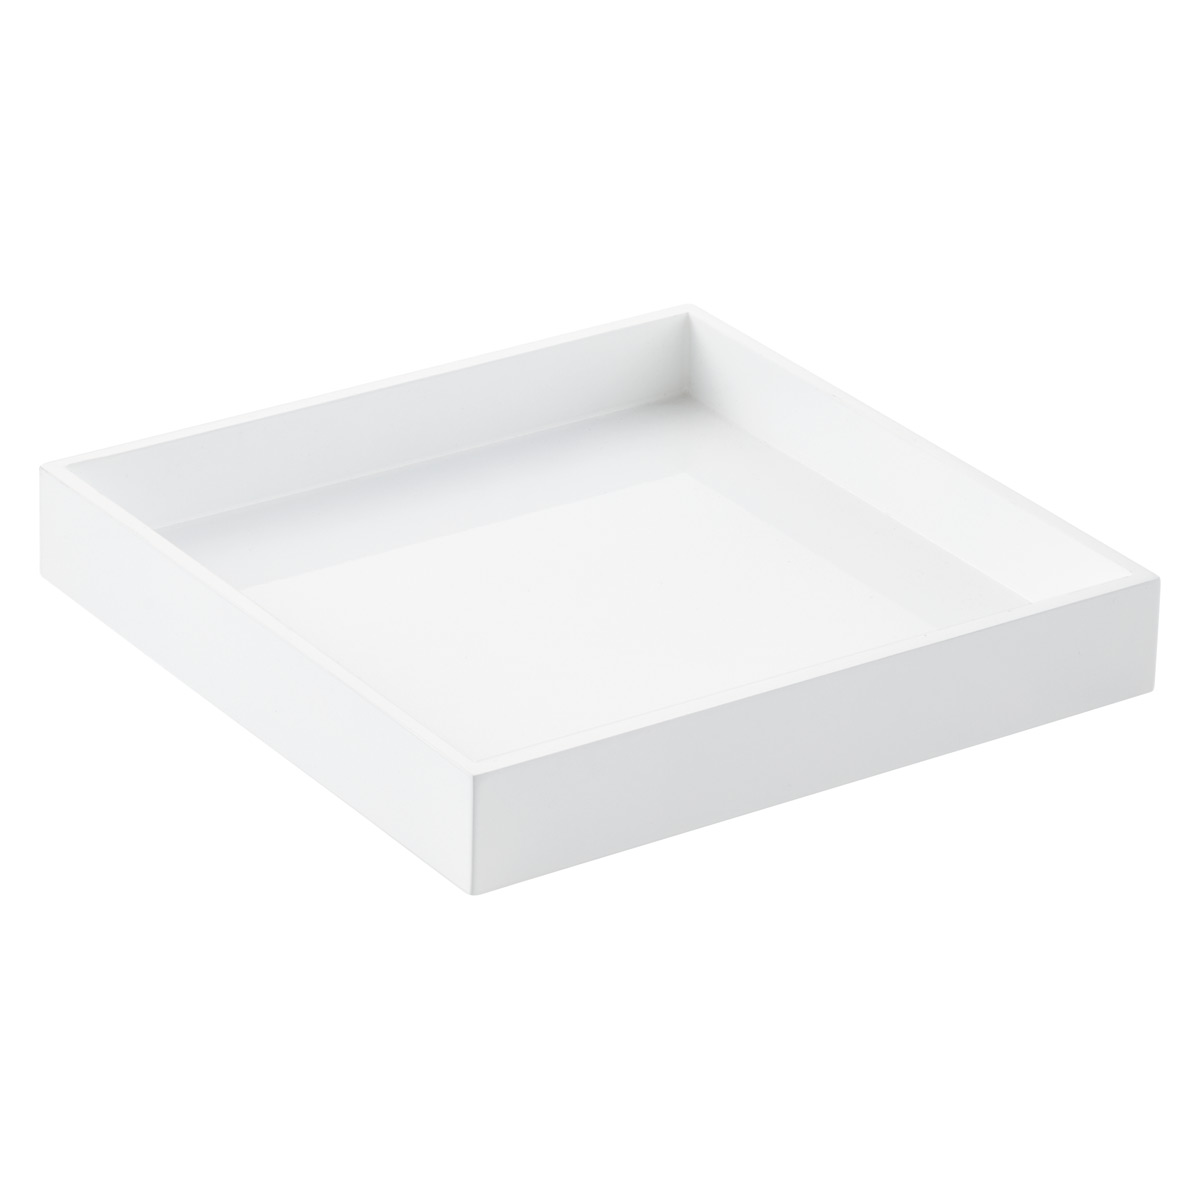 Gentil White Square Lacquered Serving Tray